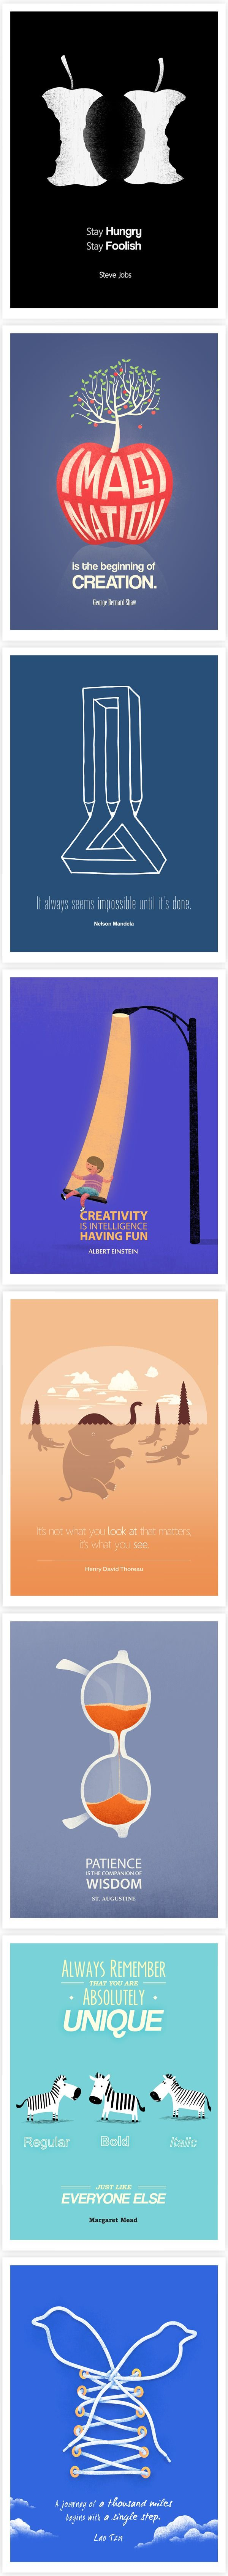 Famous Quotes are Paired with Clever Illustrations